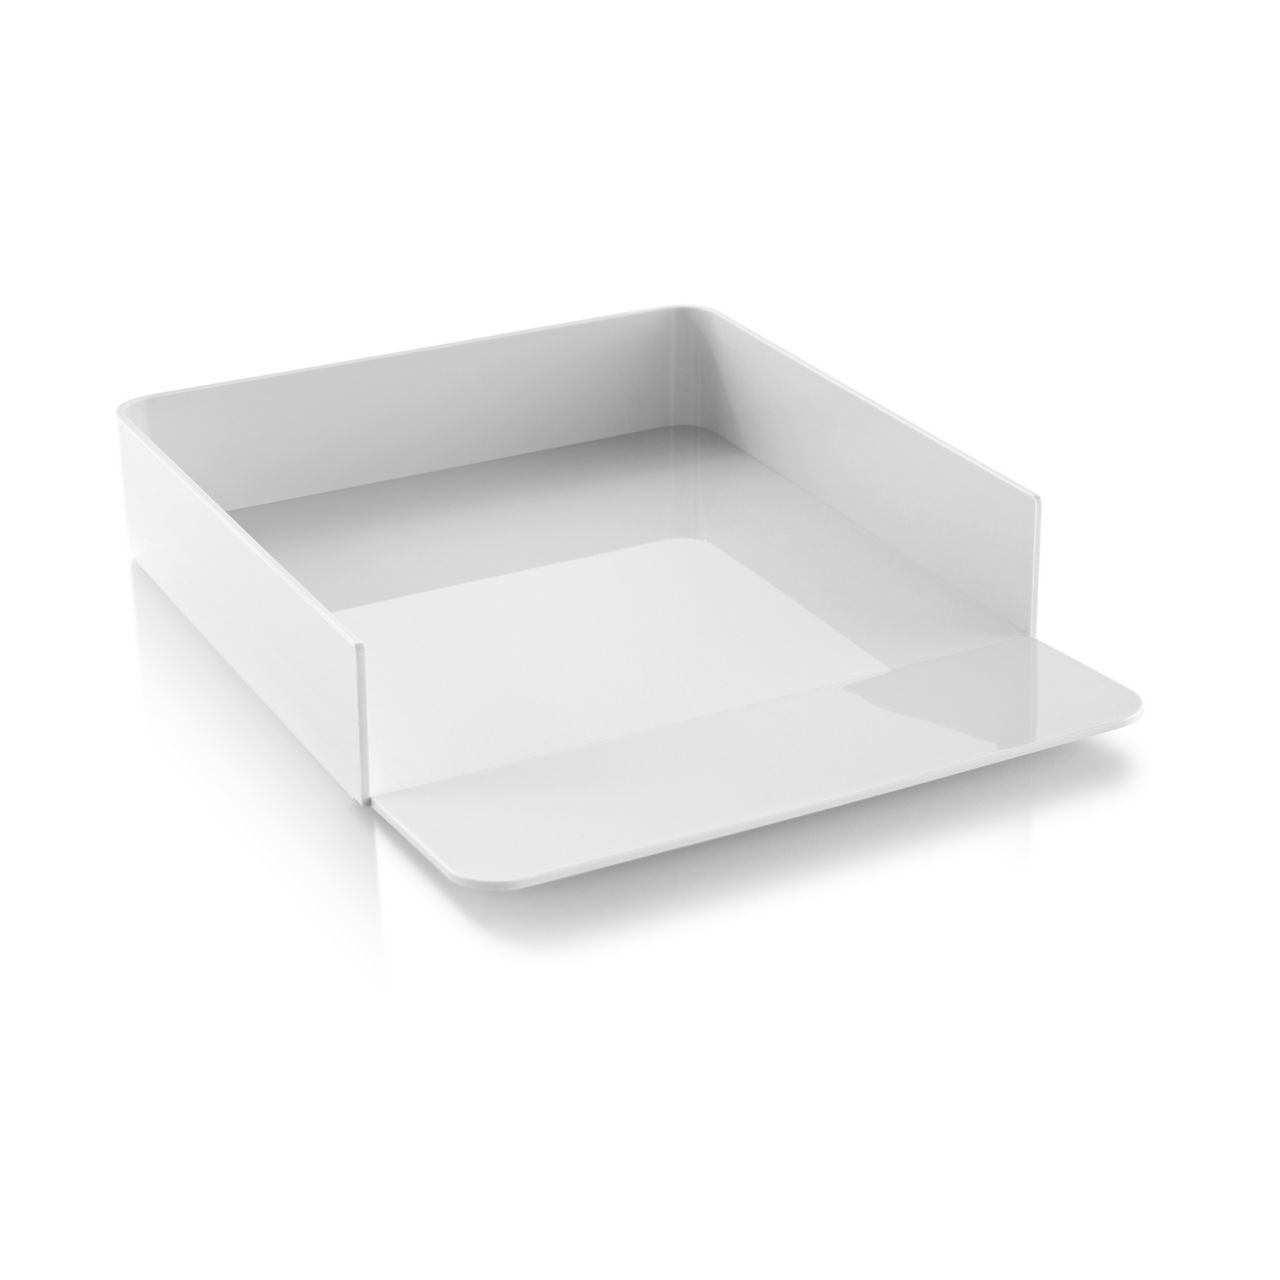 Formwork Paper Tray in Concrete by Herman Miller